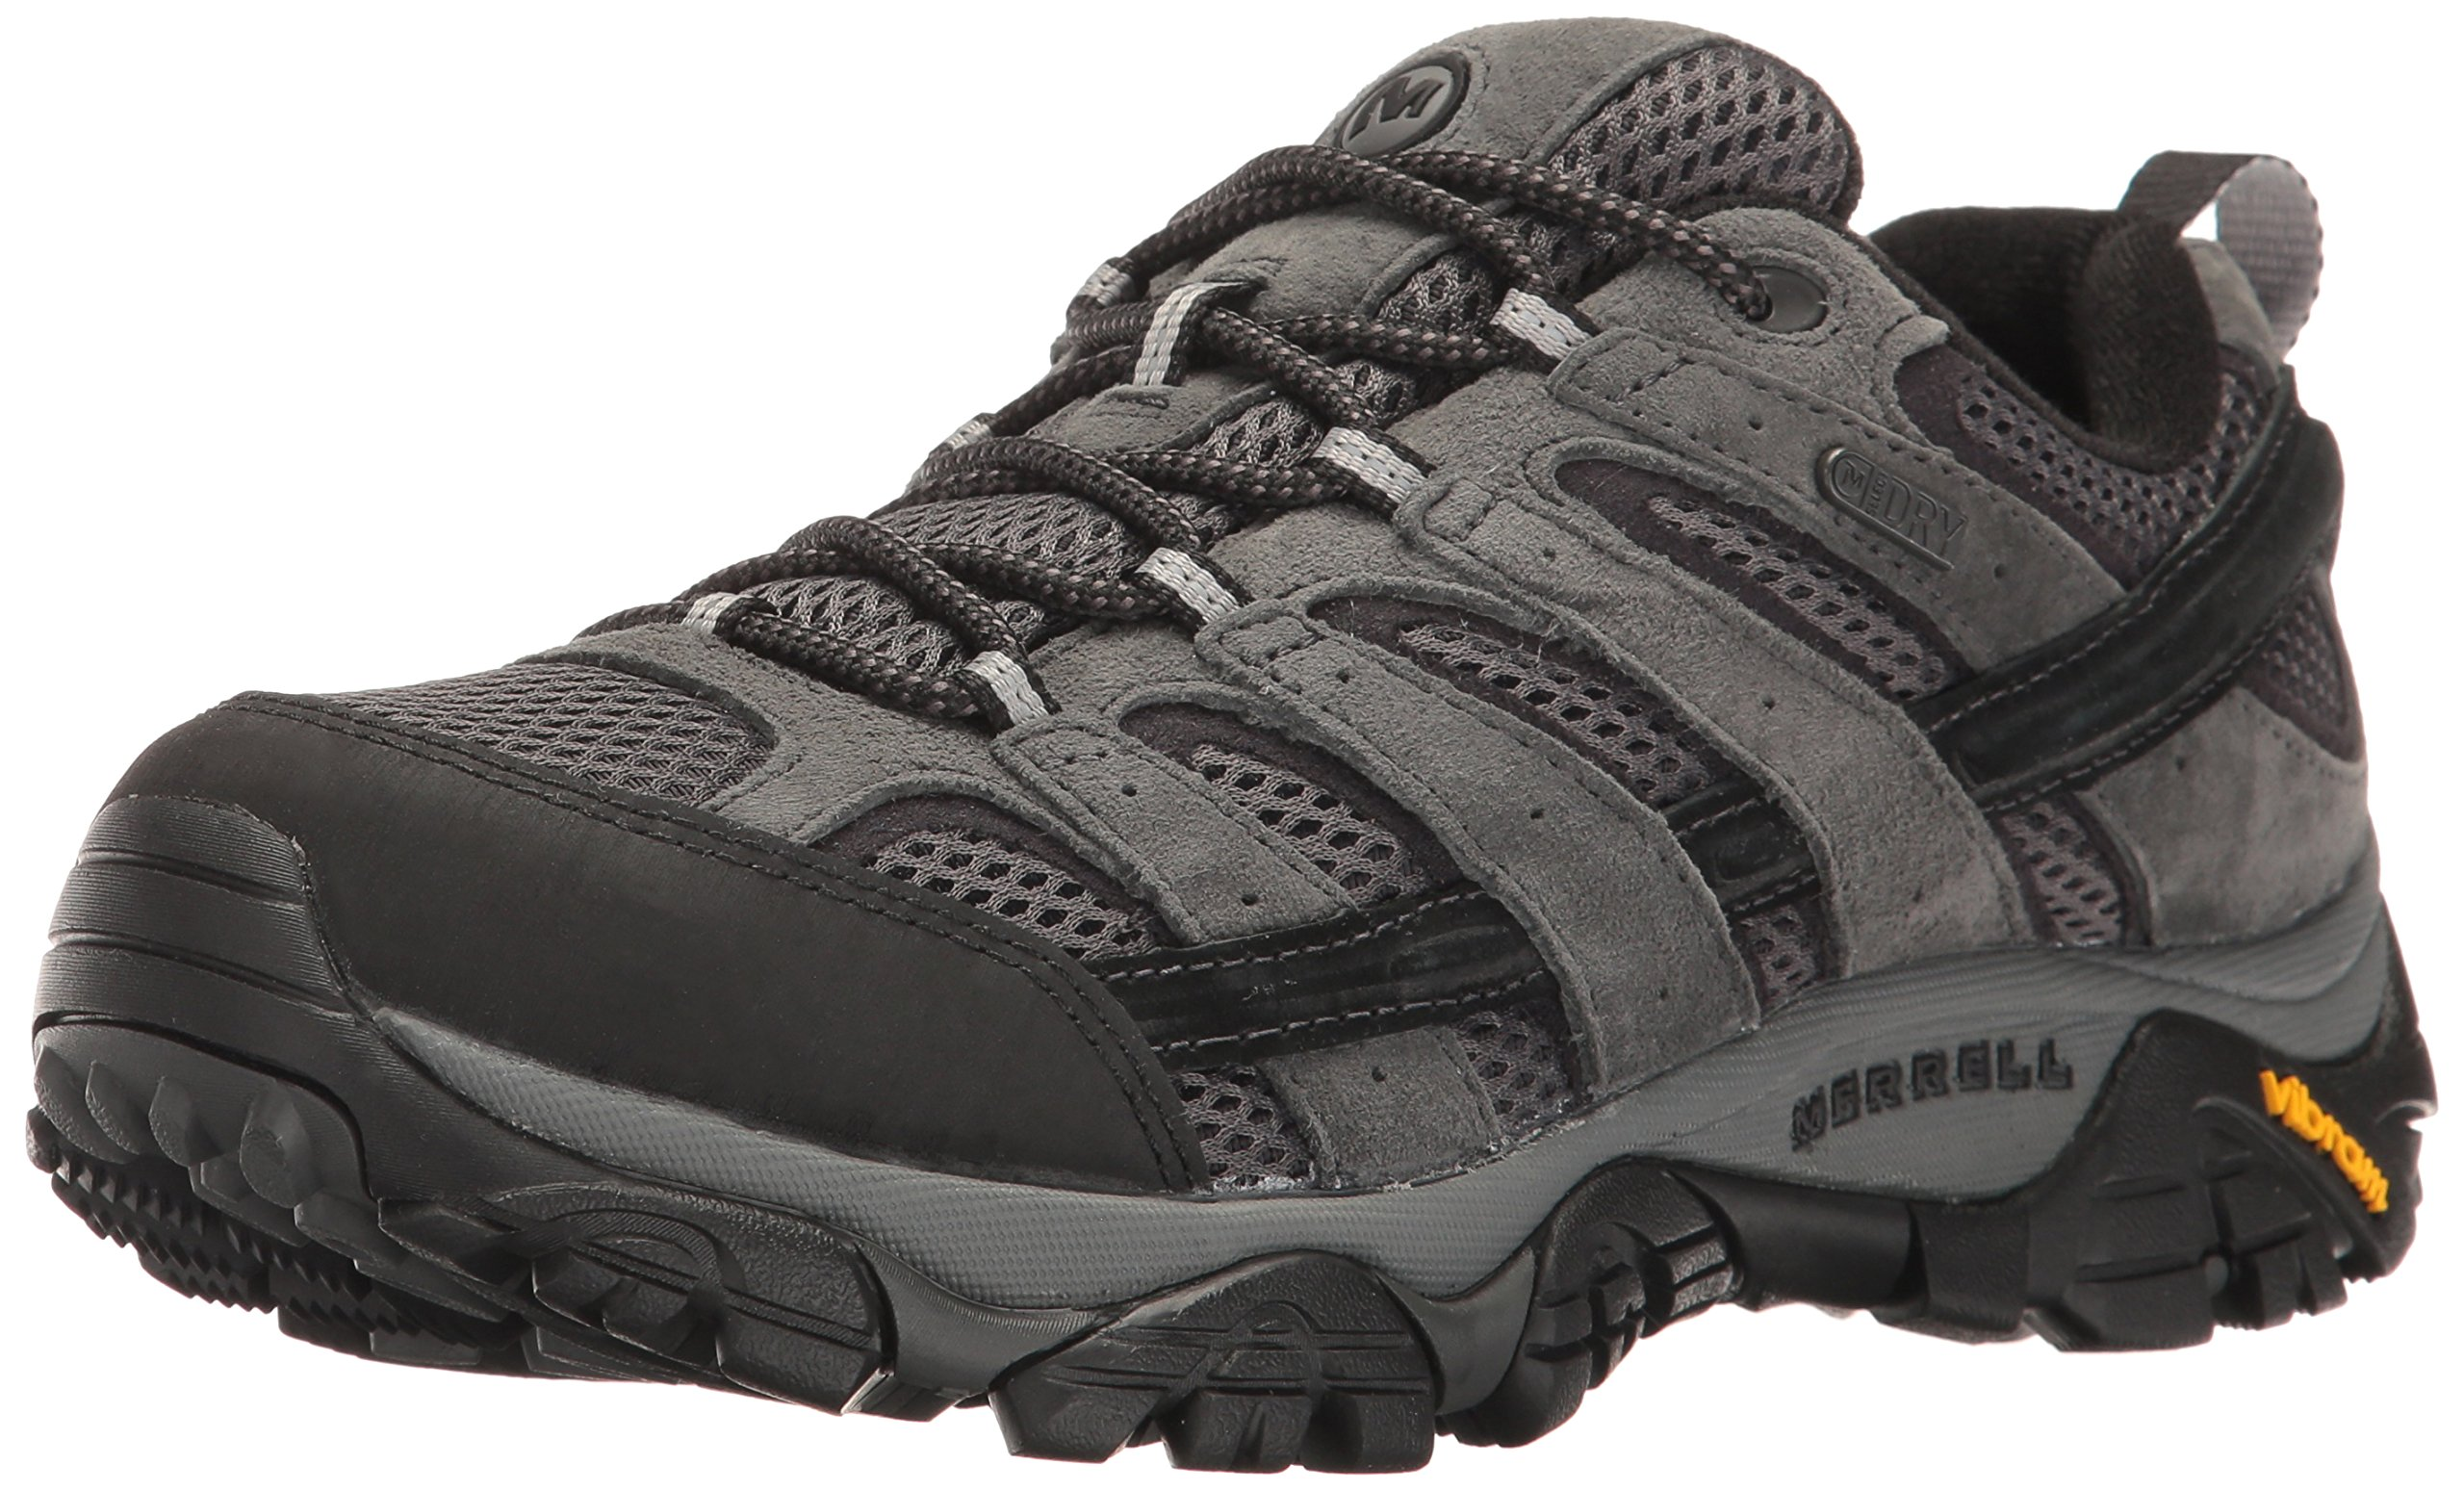 Merrell Men's Moab 2 Waterproof Hiking Shoe, Granite, 7.5 2E US